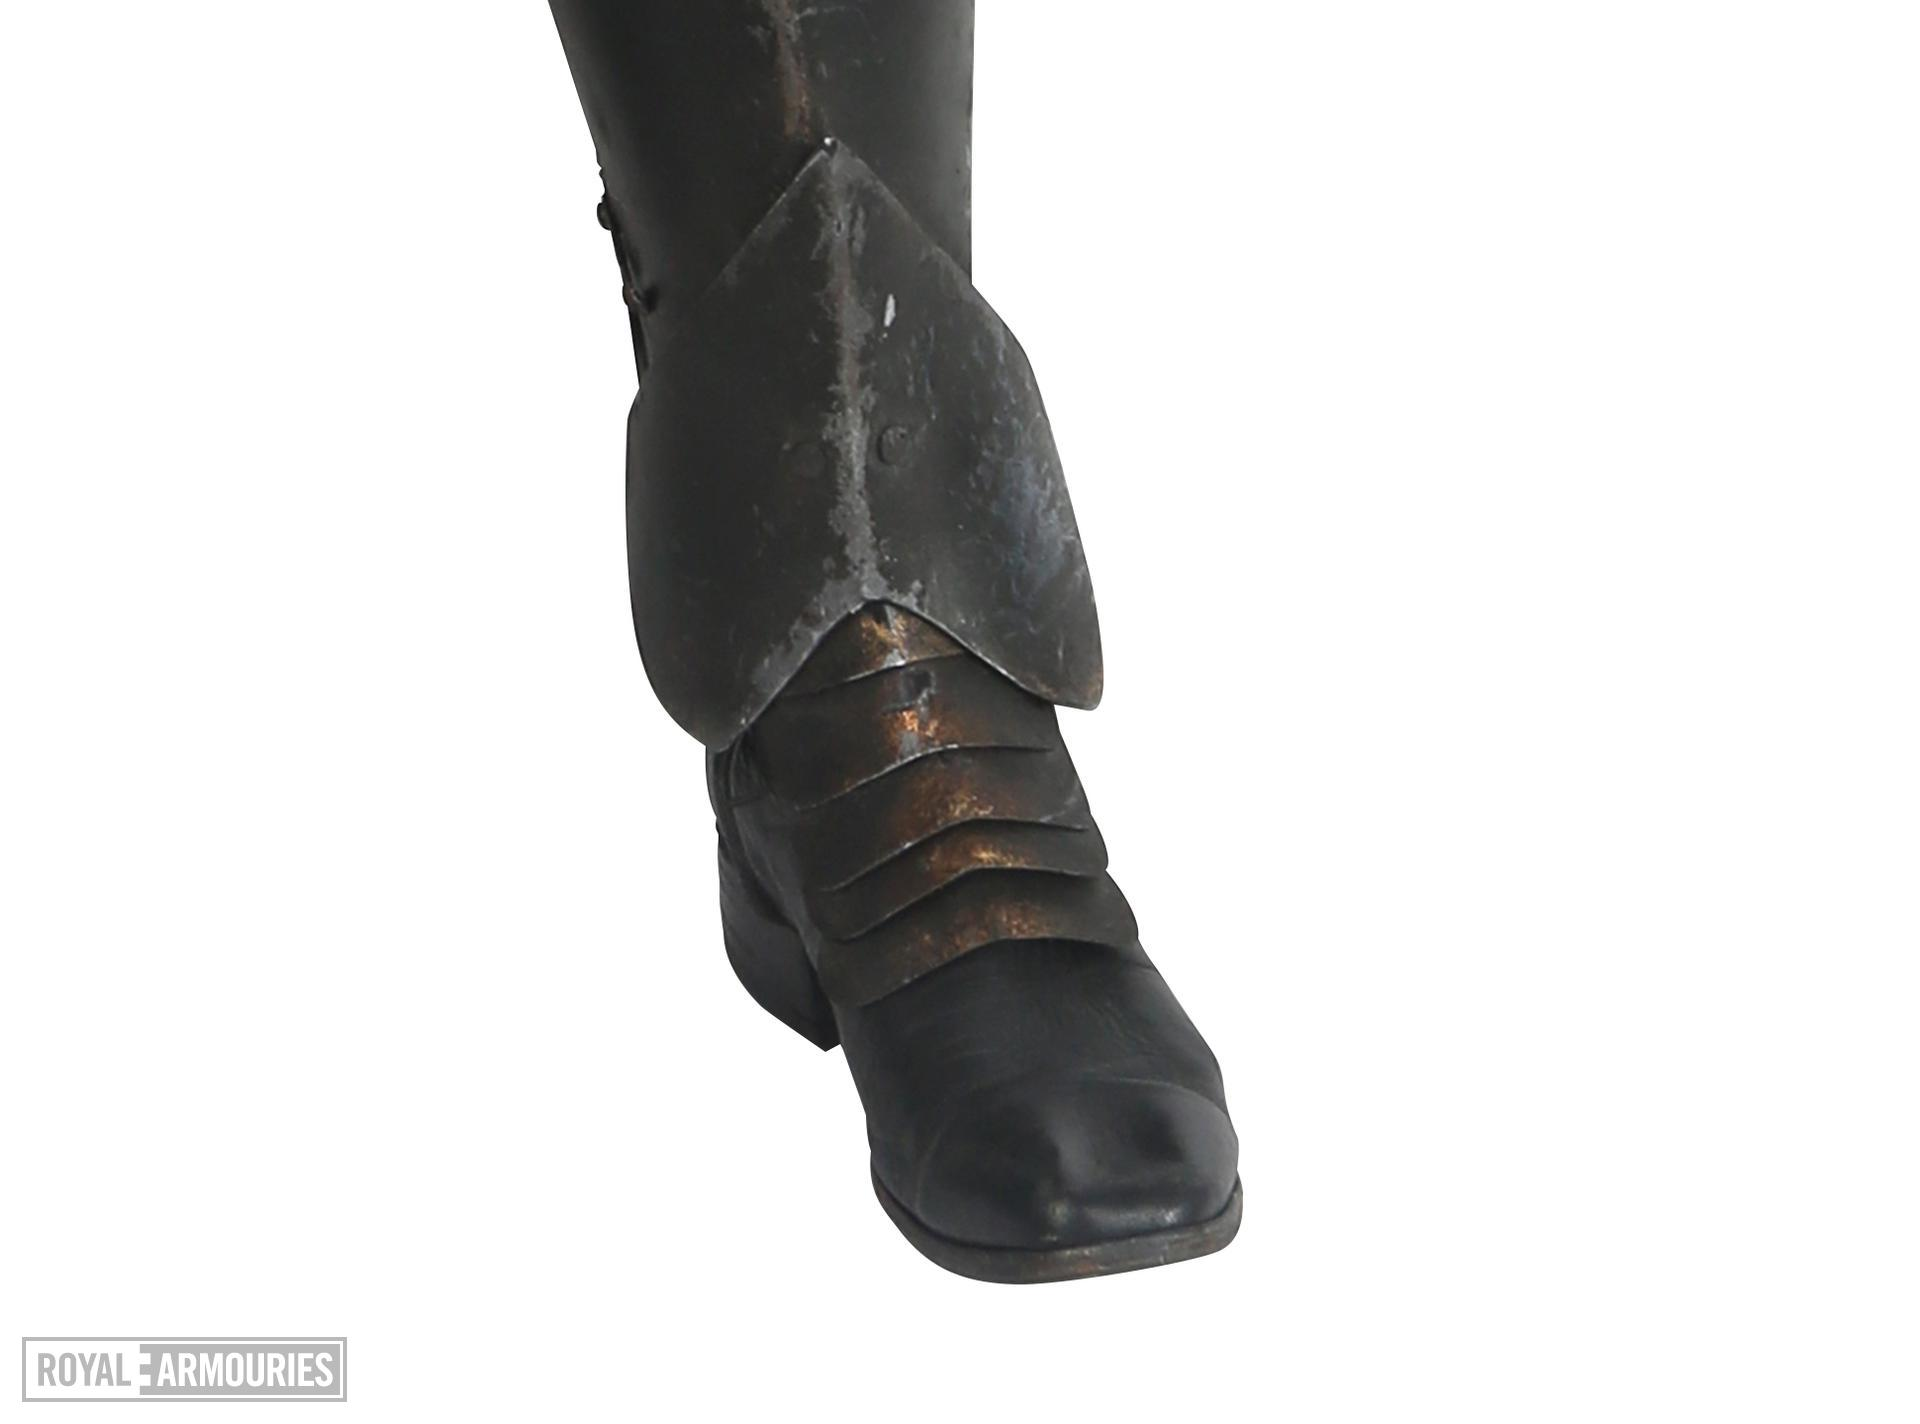 Left boot - Left boot from The Lord Marshal's Costume